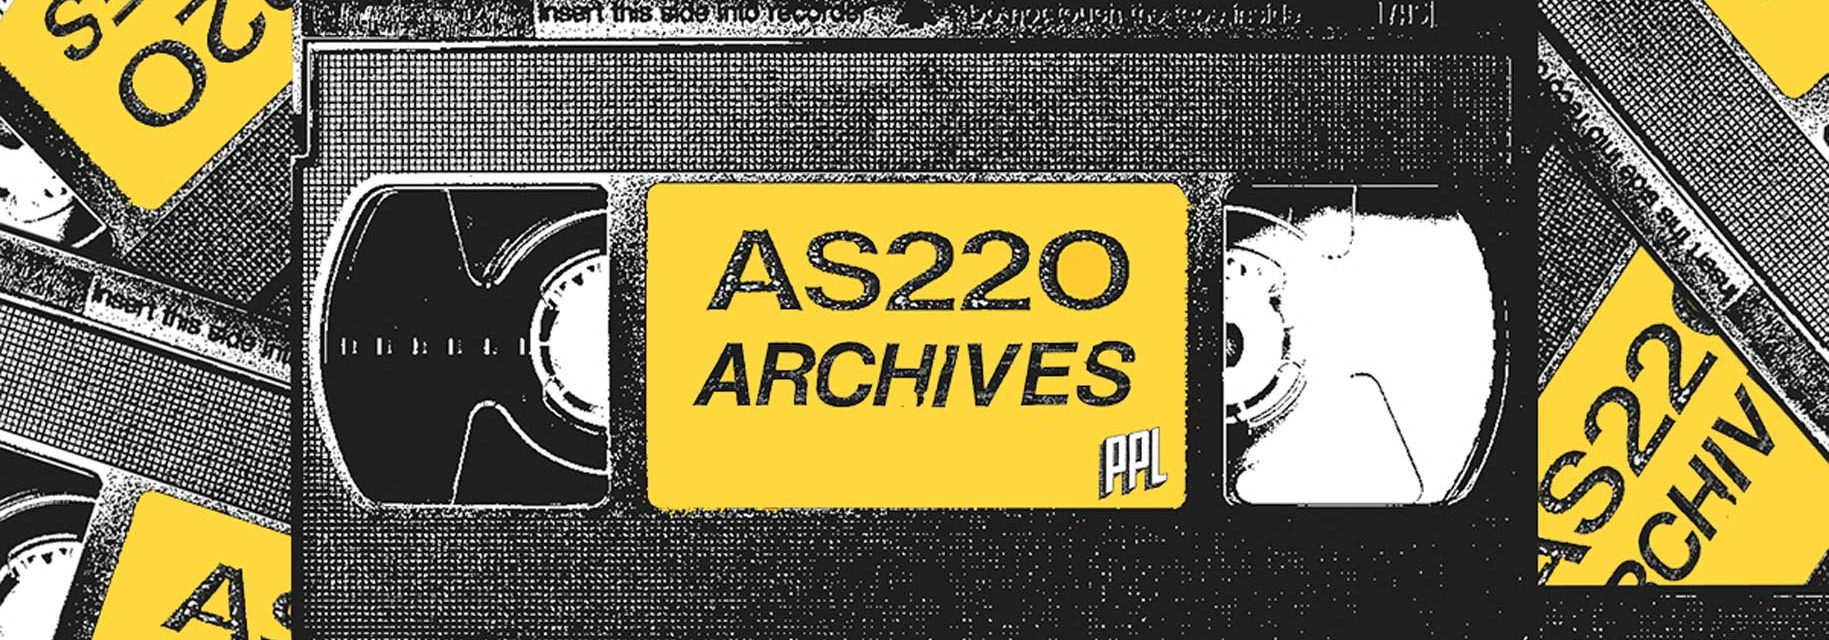 As220 Archives Header